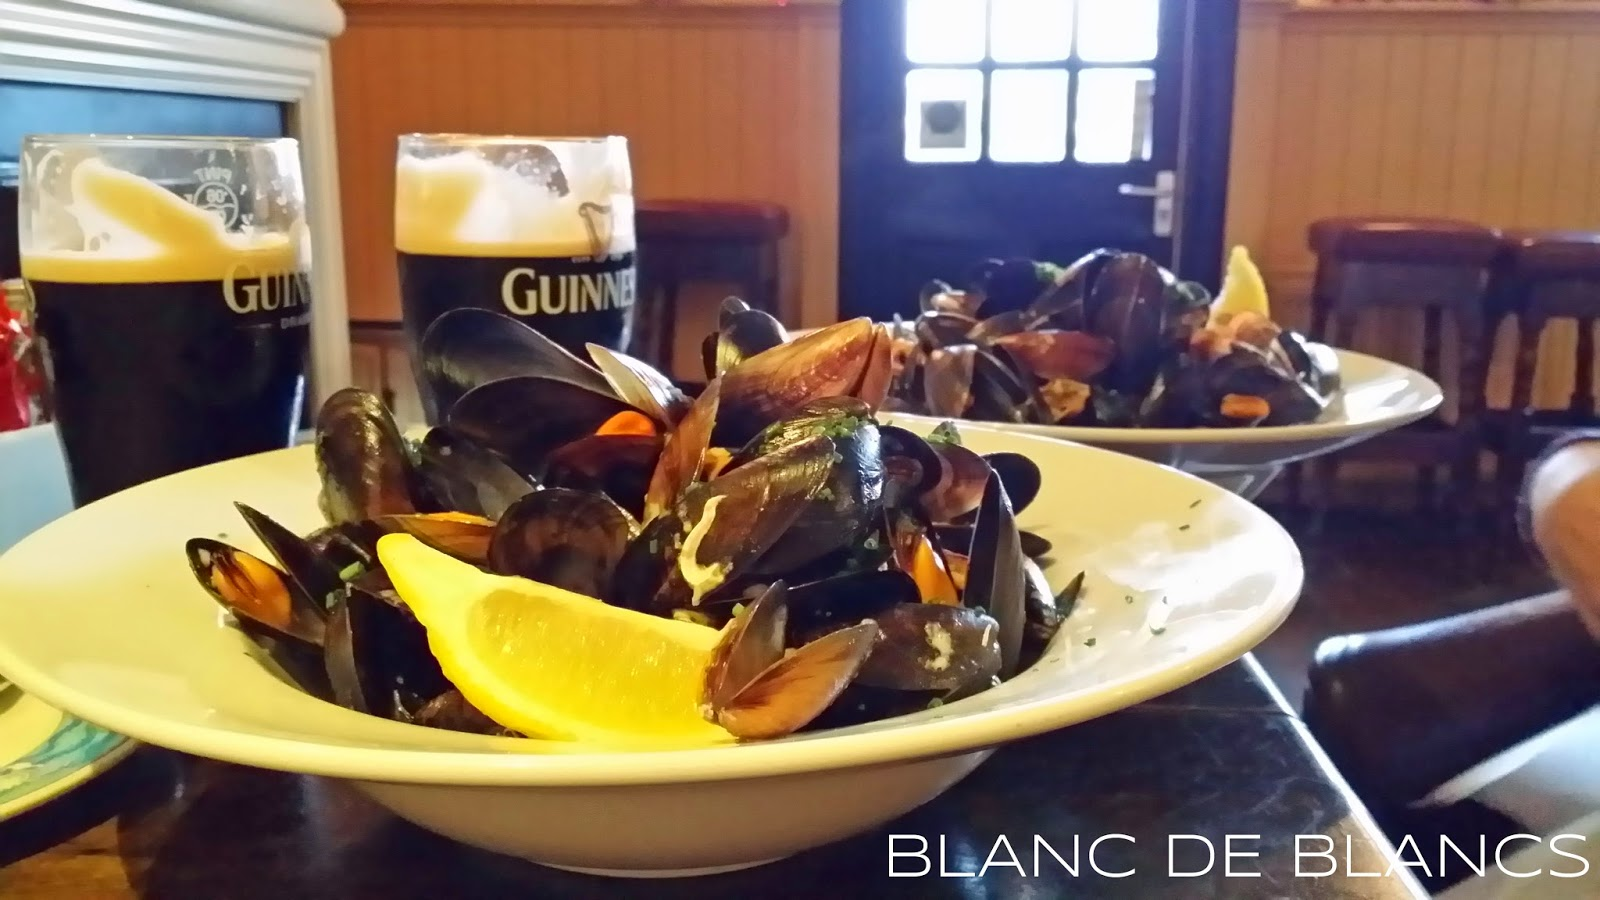 Guinness & mussles - www.blancdeblancs.fi